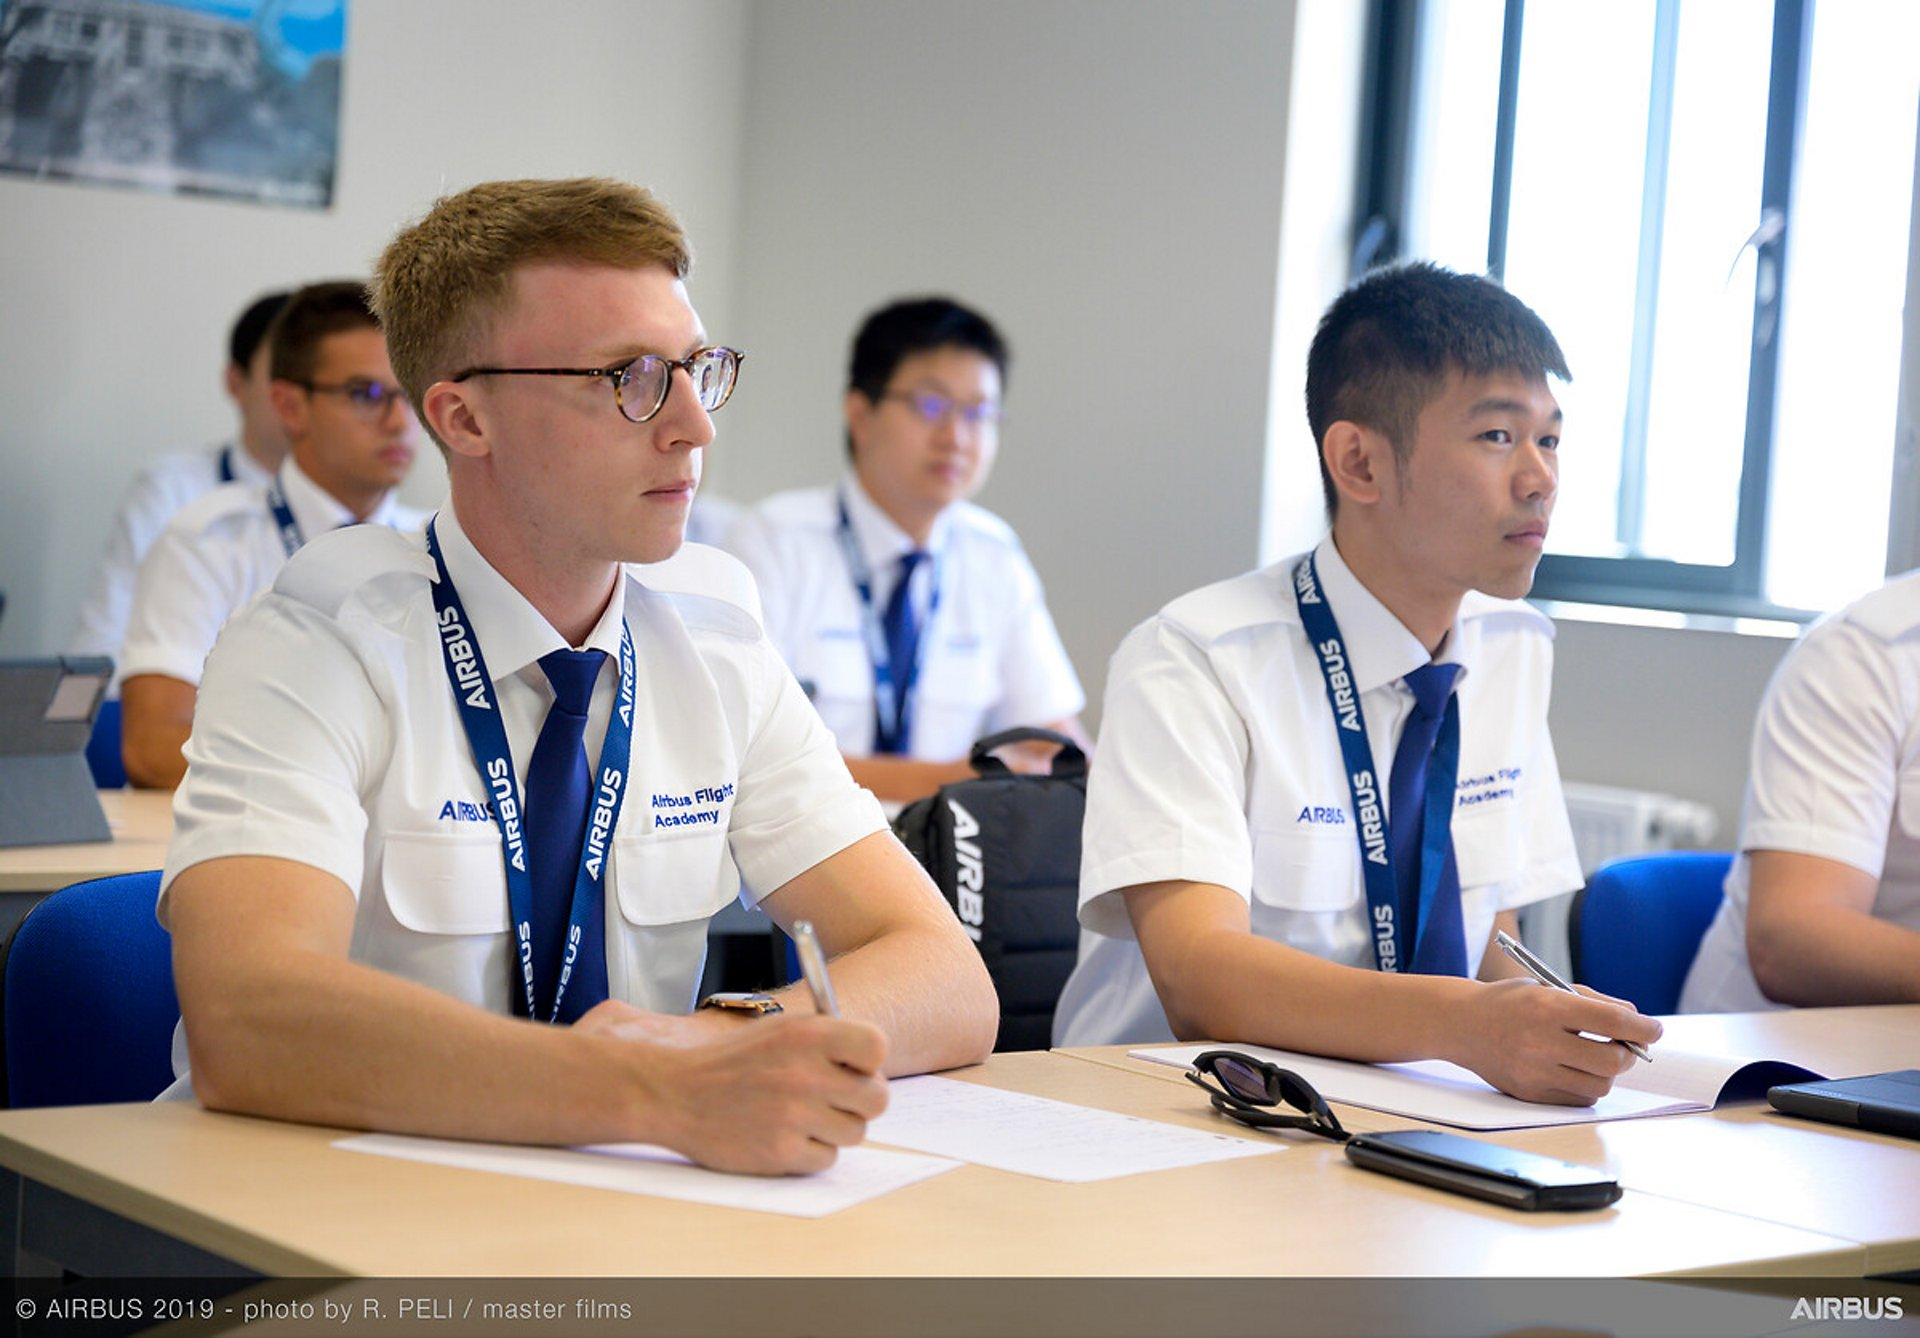 Discover the Pilot Training Programme